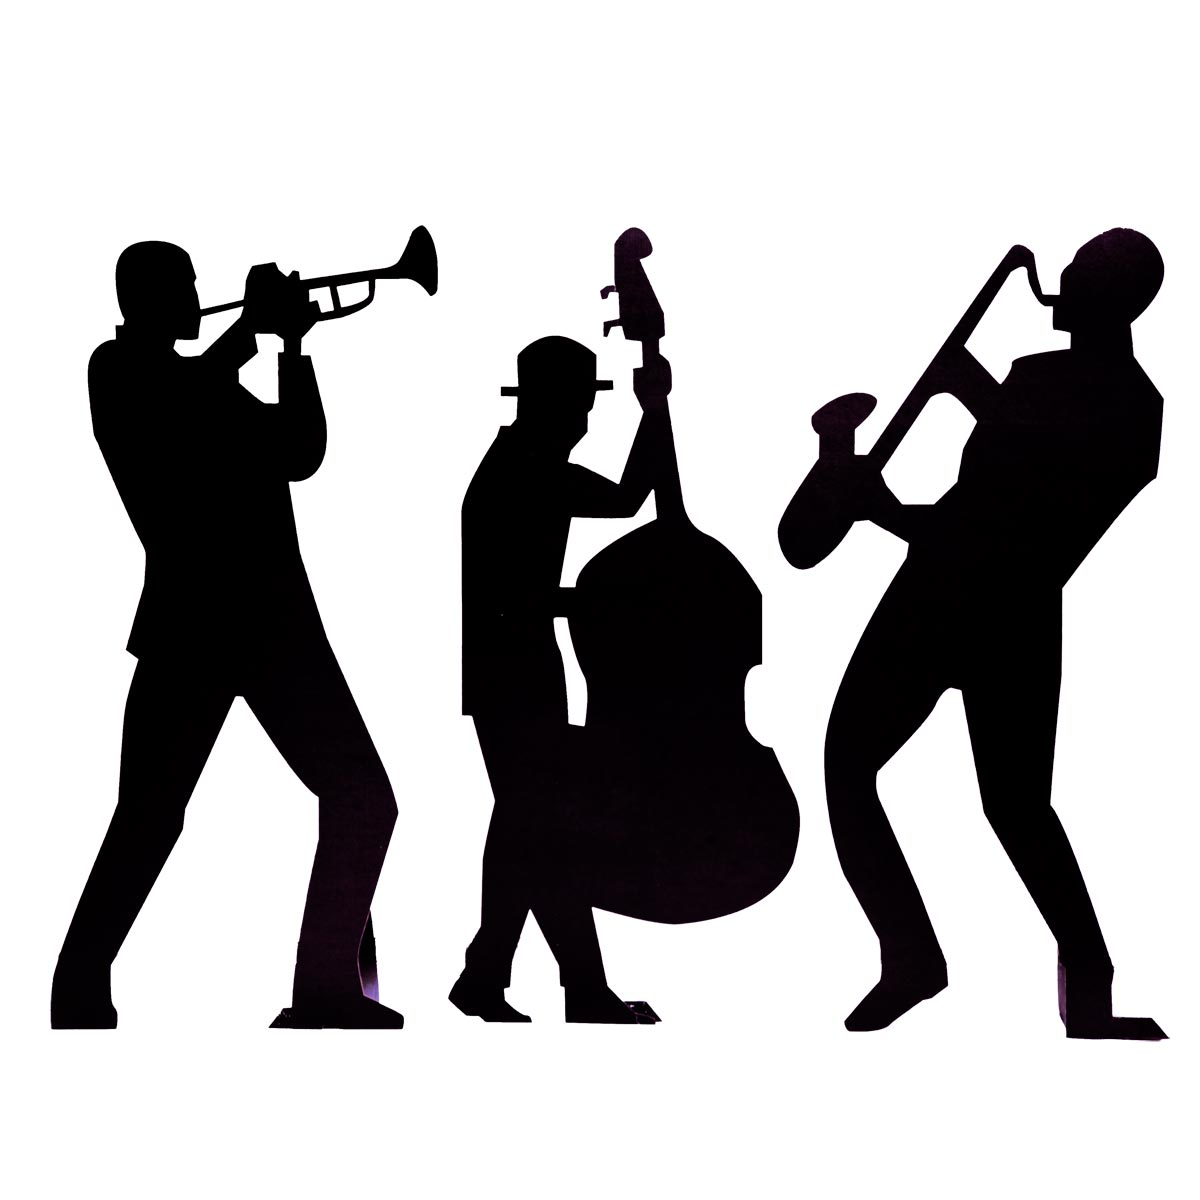 Clip Art Of Band Member Clipart - Clipart Kid Rock Band Silhouette